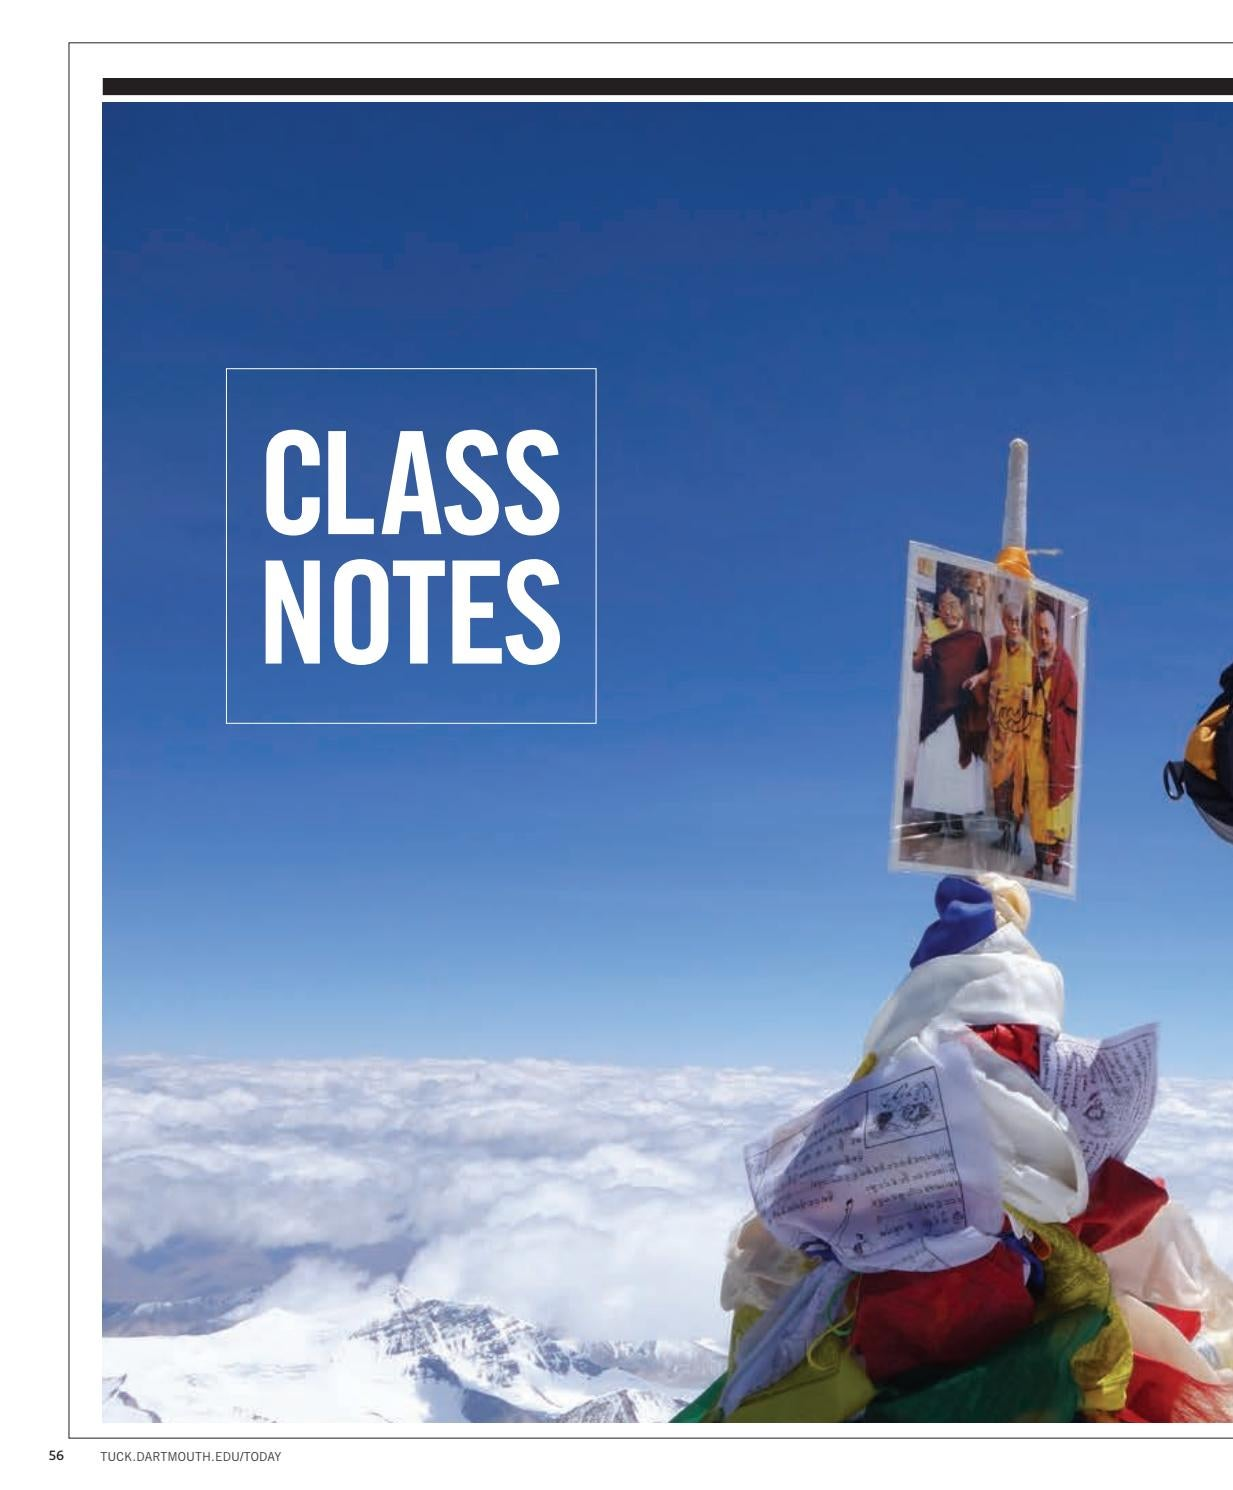 Class notes winter 2018 by tuck school of business at dartmouth issuu